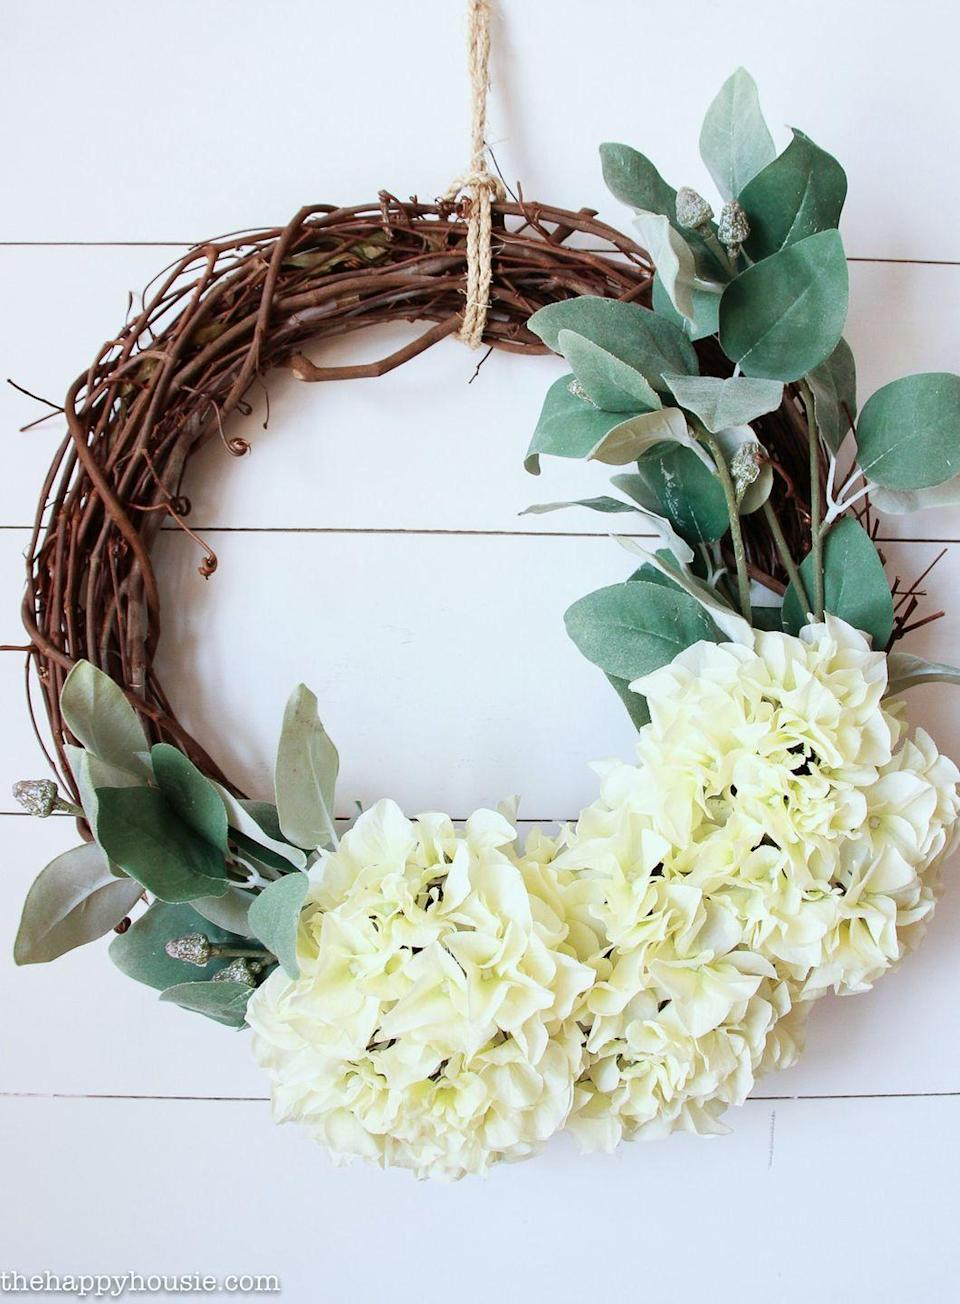 "<p>The best part about this tasteful summer wreath, aside from the gorgeous blooms? It only takes five minutes to assemble (yes, you read that correctly). </p><p><strong>Get the tutorial at <a href=""https://thehappyhousie.porch.com/five-minute-hydrangea-fall-wreath/"" rel=""nofollow noopener"" target=""_blank"" data-ylk=""slk:The Happy Housie"" class=""link rapid-noclick-resp"">The Happy Housie</a>. </strong></p><p><strong><a class=""link rapid-noclick-resp"" href=""https://www.amazon.com/Ougual-Natural-Grapevine-Wreaths-10-Inch/dp/B07K42LJPH/?tag=syn-yahoo-20&ascsubtag=%5Bartid%7C10050.g.4395%5Bsrc%7Cyahoo-us"" rel=""nofollow noopener"" target=""_blank"" data-ylk=""slk:SHOP GRAPEVINE WREATHS"">SHOP GRAPEVINE WREATHS</a><br></strong></p>"